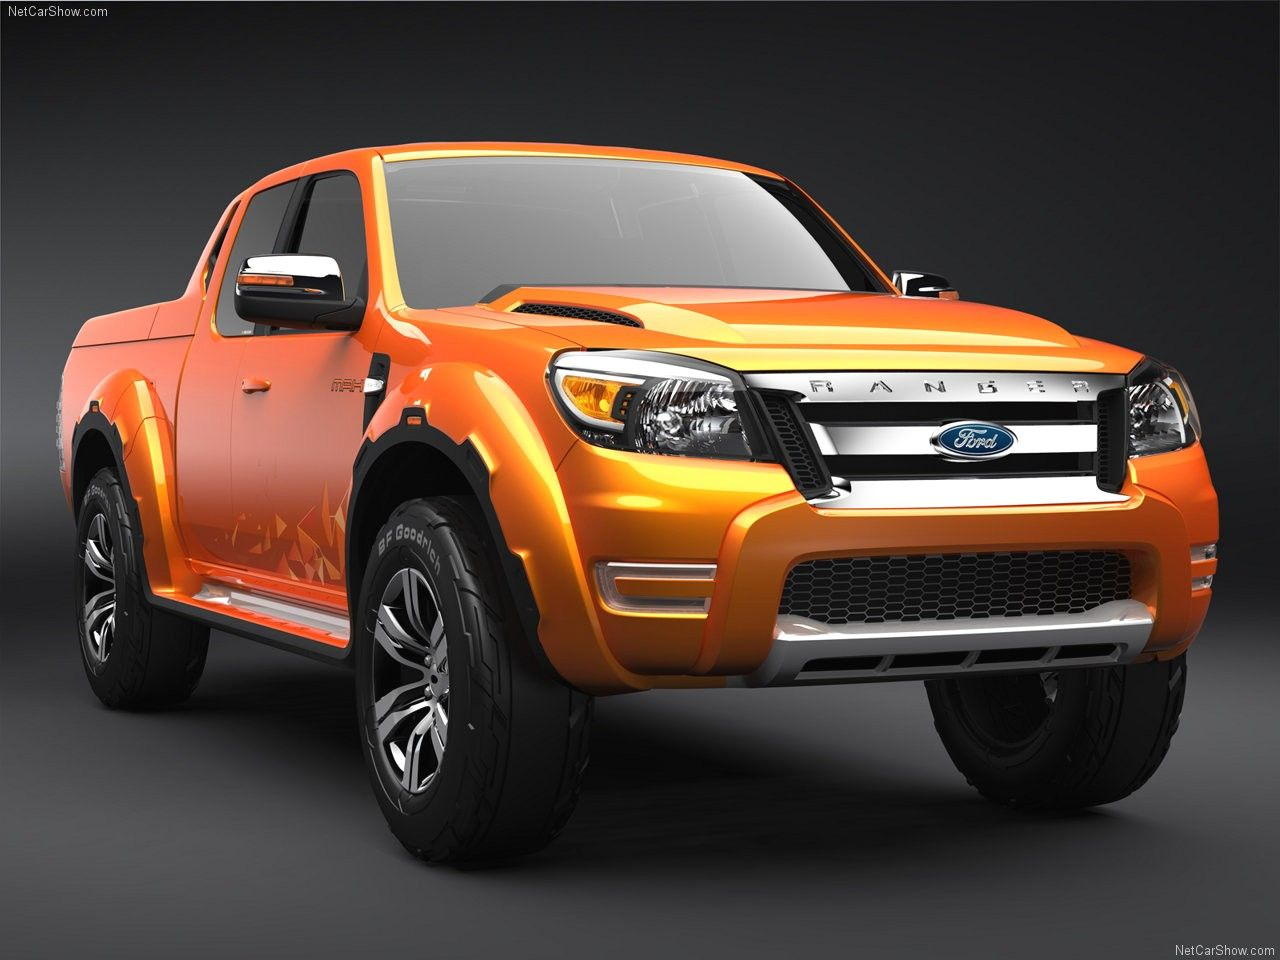 2017 ford ranger review price and specs http newautocarhq com